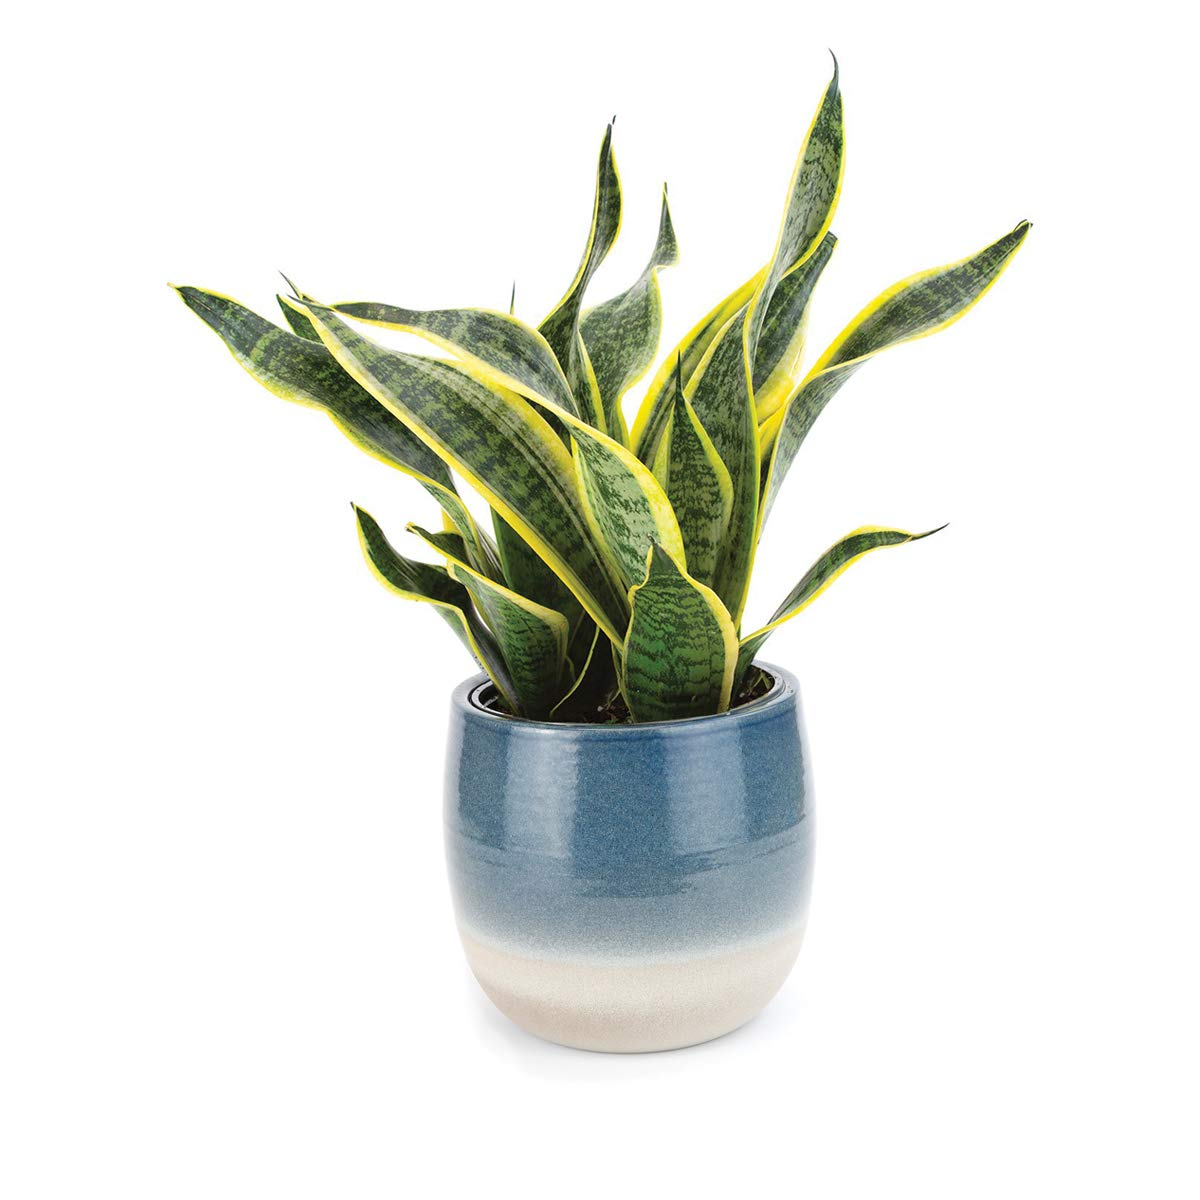 Burpee Golden Snake Plant with 6'' Decorative Waterproof Ceramic Pot | Indirect Low-Light, Live Easy Care House by Burpee